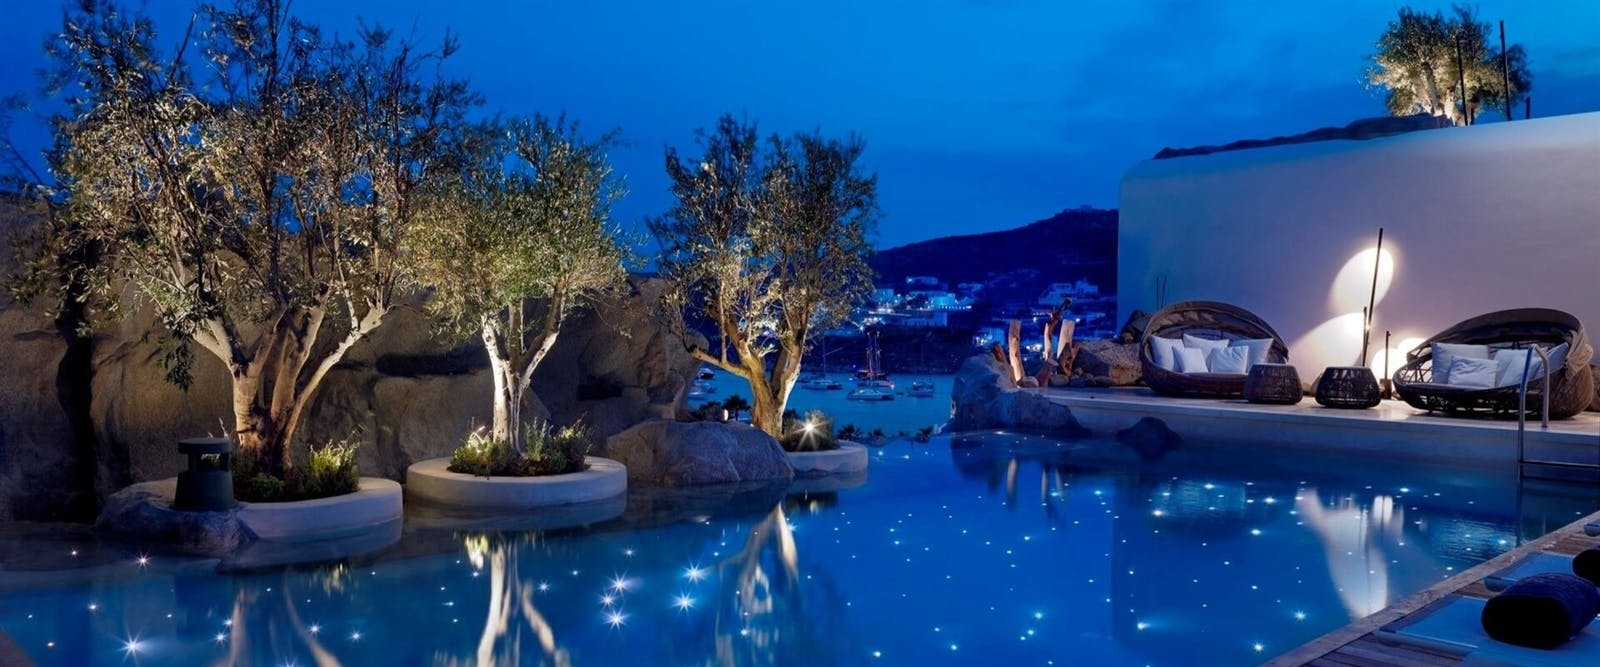 The Pool at Kenshõ Boutique Hotel & Suites, Ornos, Greece